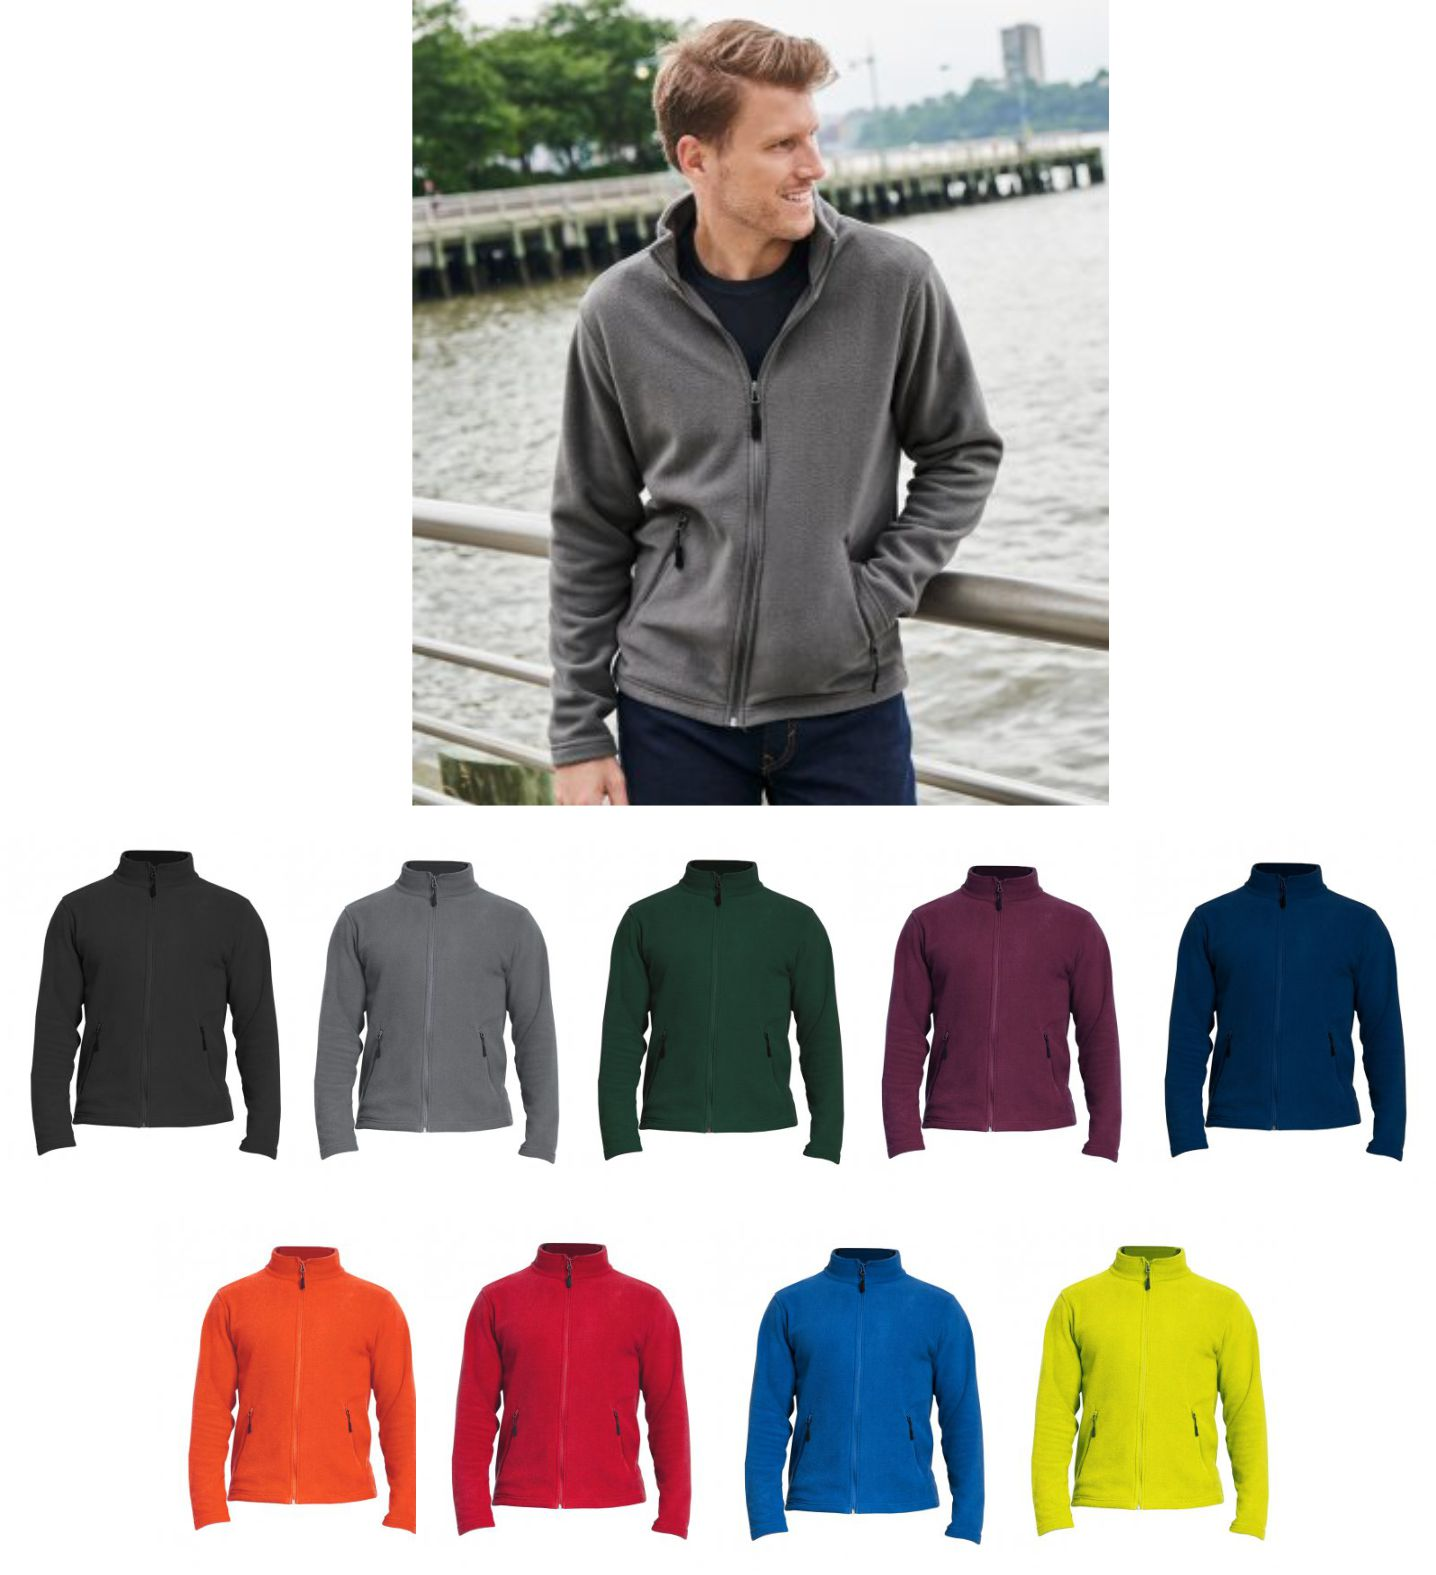 GH110 Gildan Hammer Micro Fleece Jacket